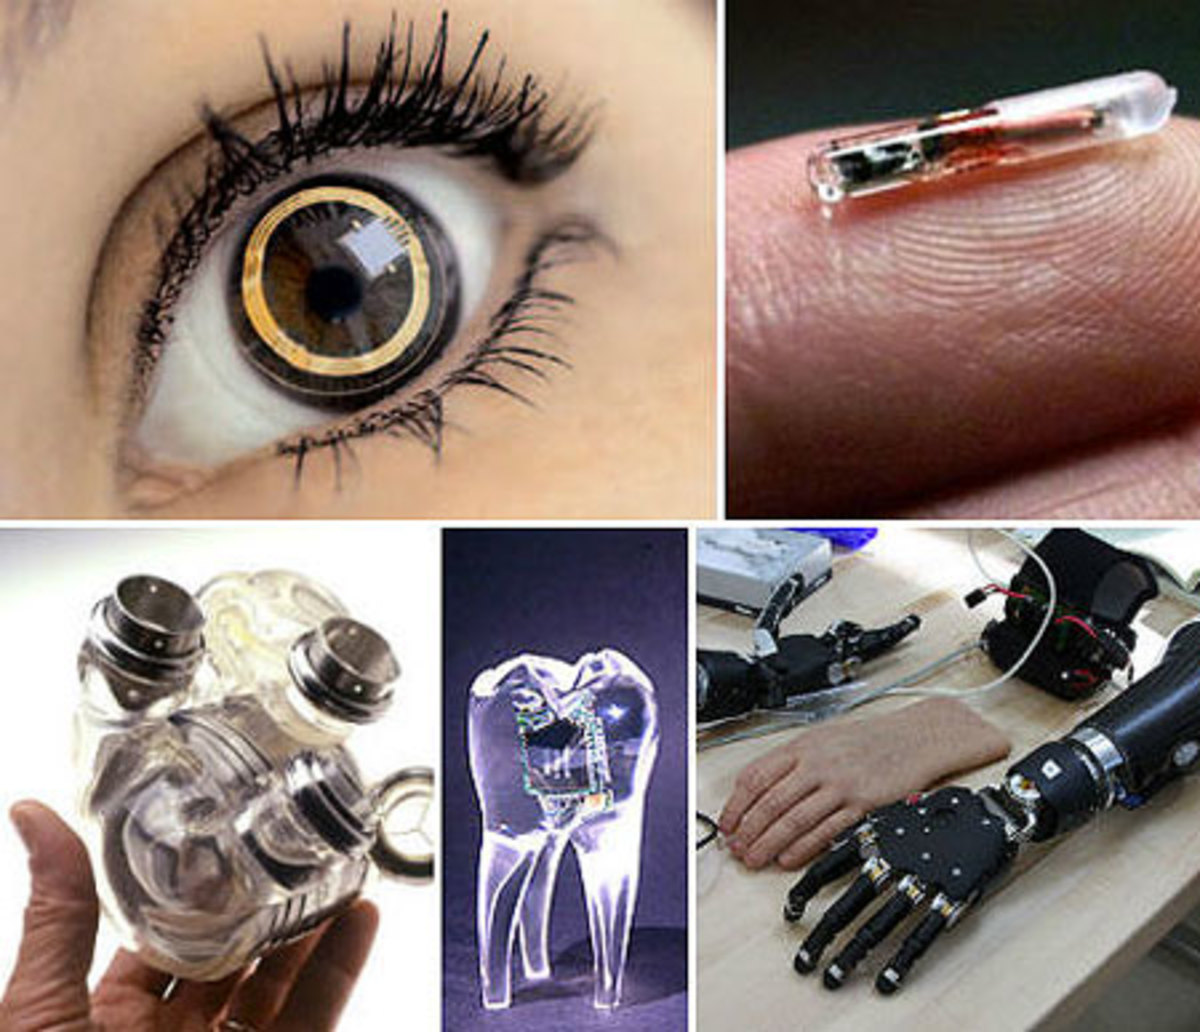 Technology of the future is going to bring bionics crashing into society, drastically changing day to day life.